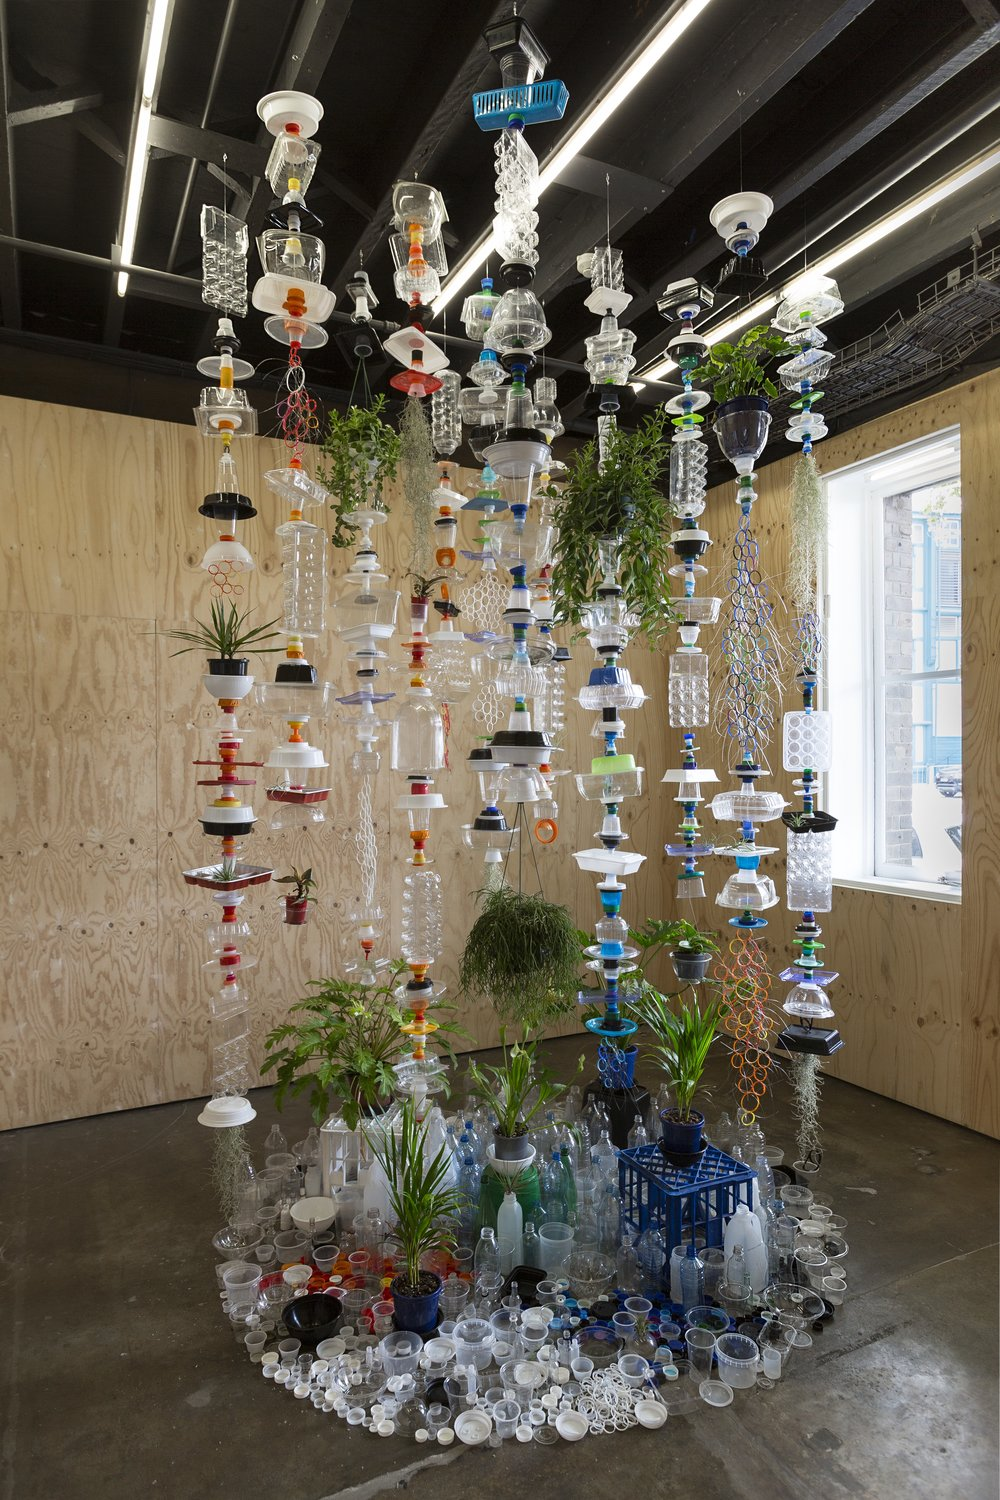 6 lauren berkowitz's fragile structures; Emma-Kate wilson   Lauren Berkowitz,  Plastic Topographies , 2018, installation view, Ideas Platform, Artspace, Sydney, 2018; plastic and plants, 300 x 200 x 200cm; image courtesy the artist; photo: Jessica Maurer